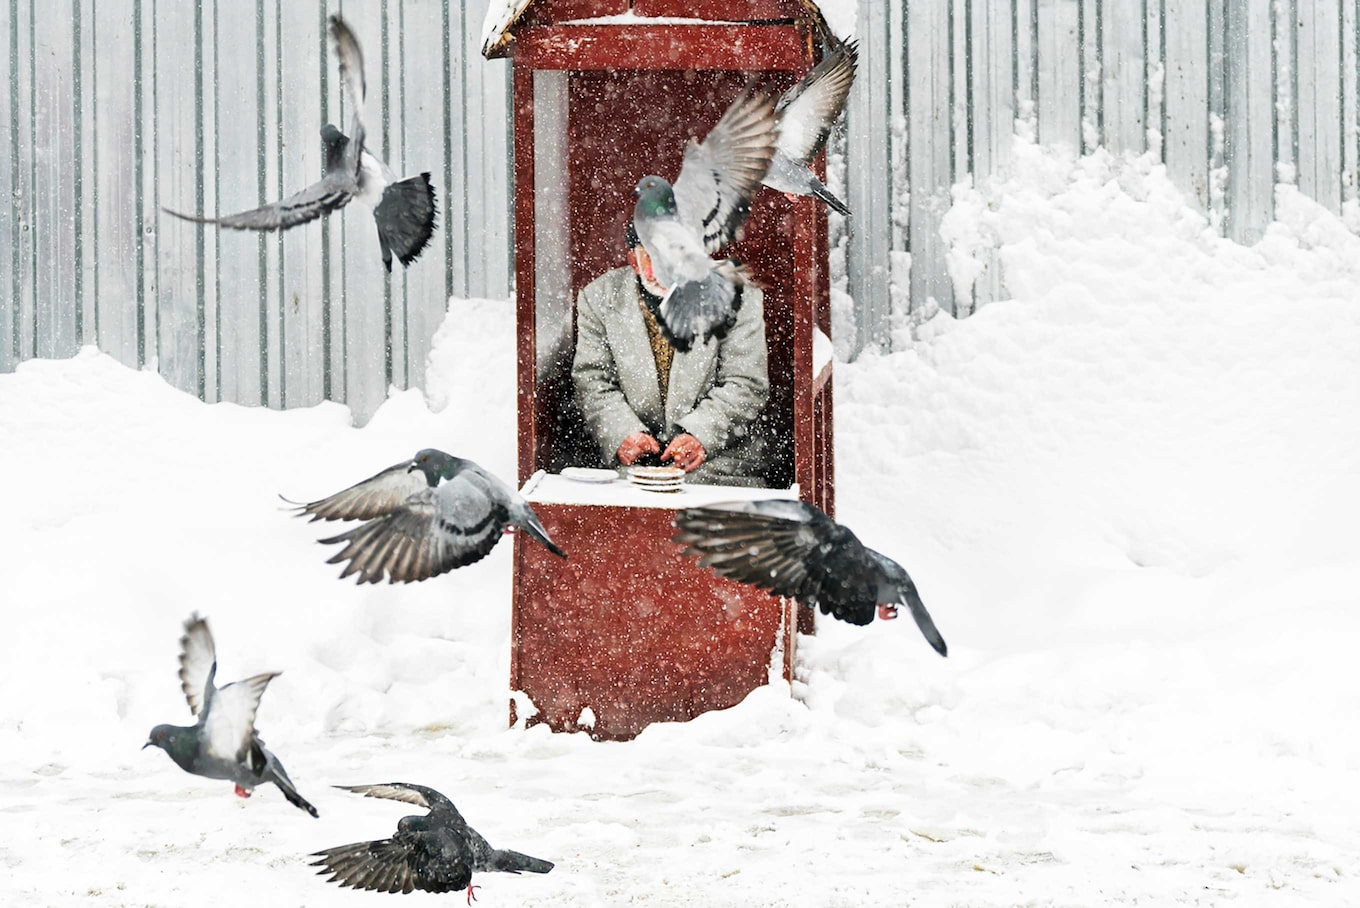 murat-pulat-sony-alpha-7SII-old-man-sits-in-snowy-shelter-as-birds-fly-in-front-of-him